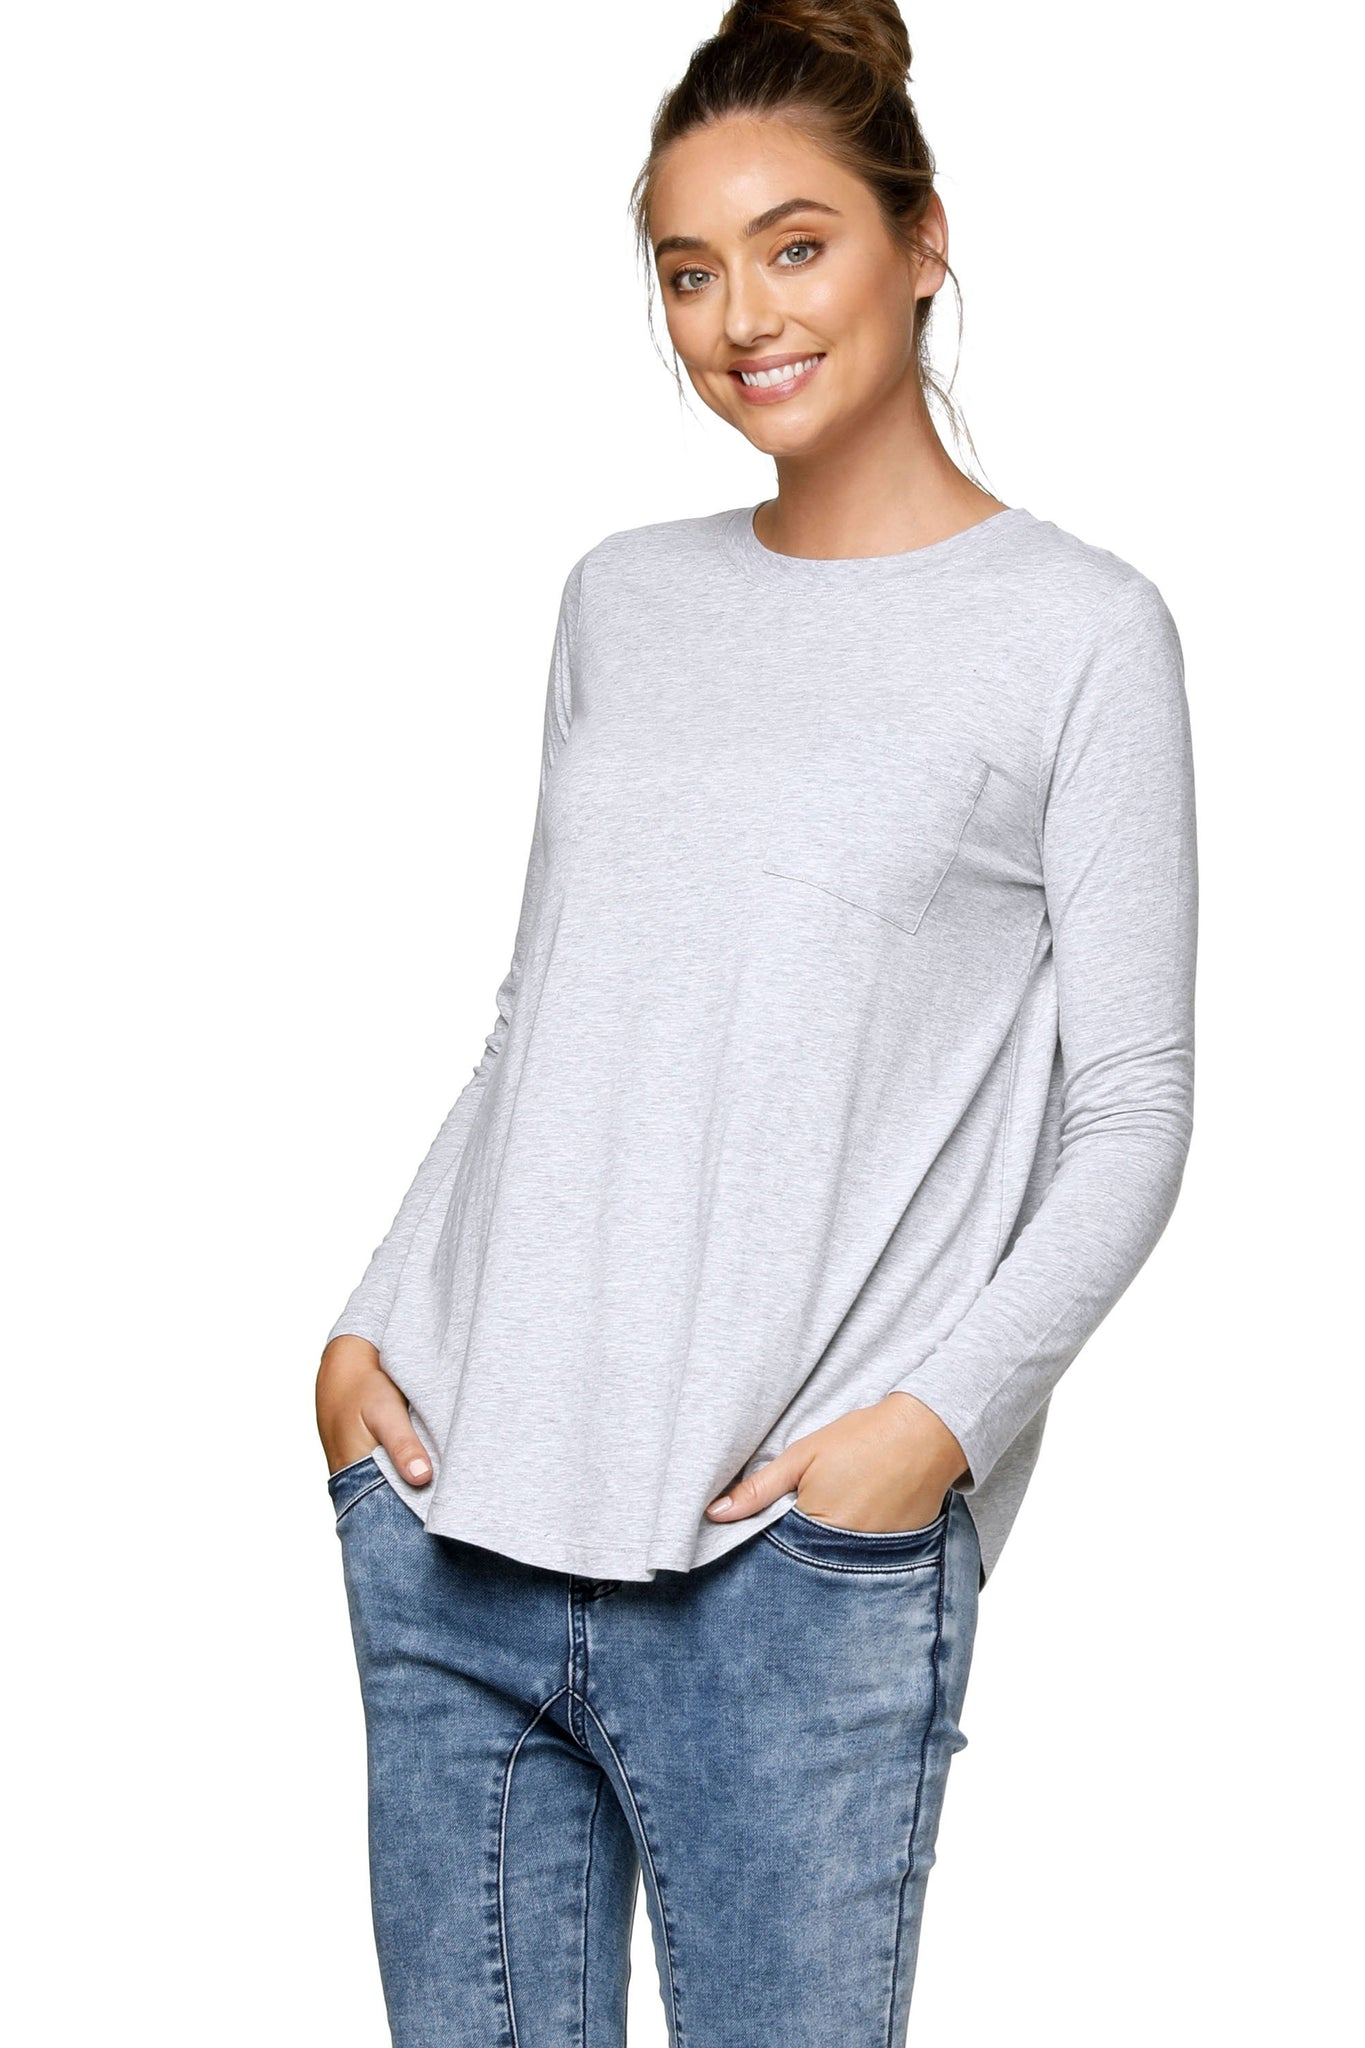 Long Sleeve Maternity Top - Grey 6